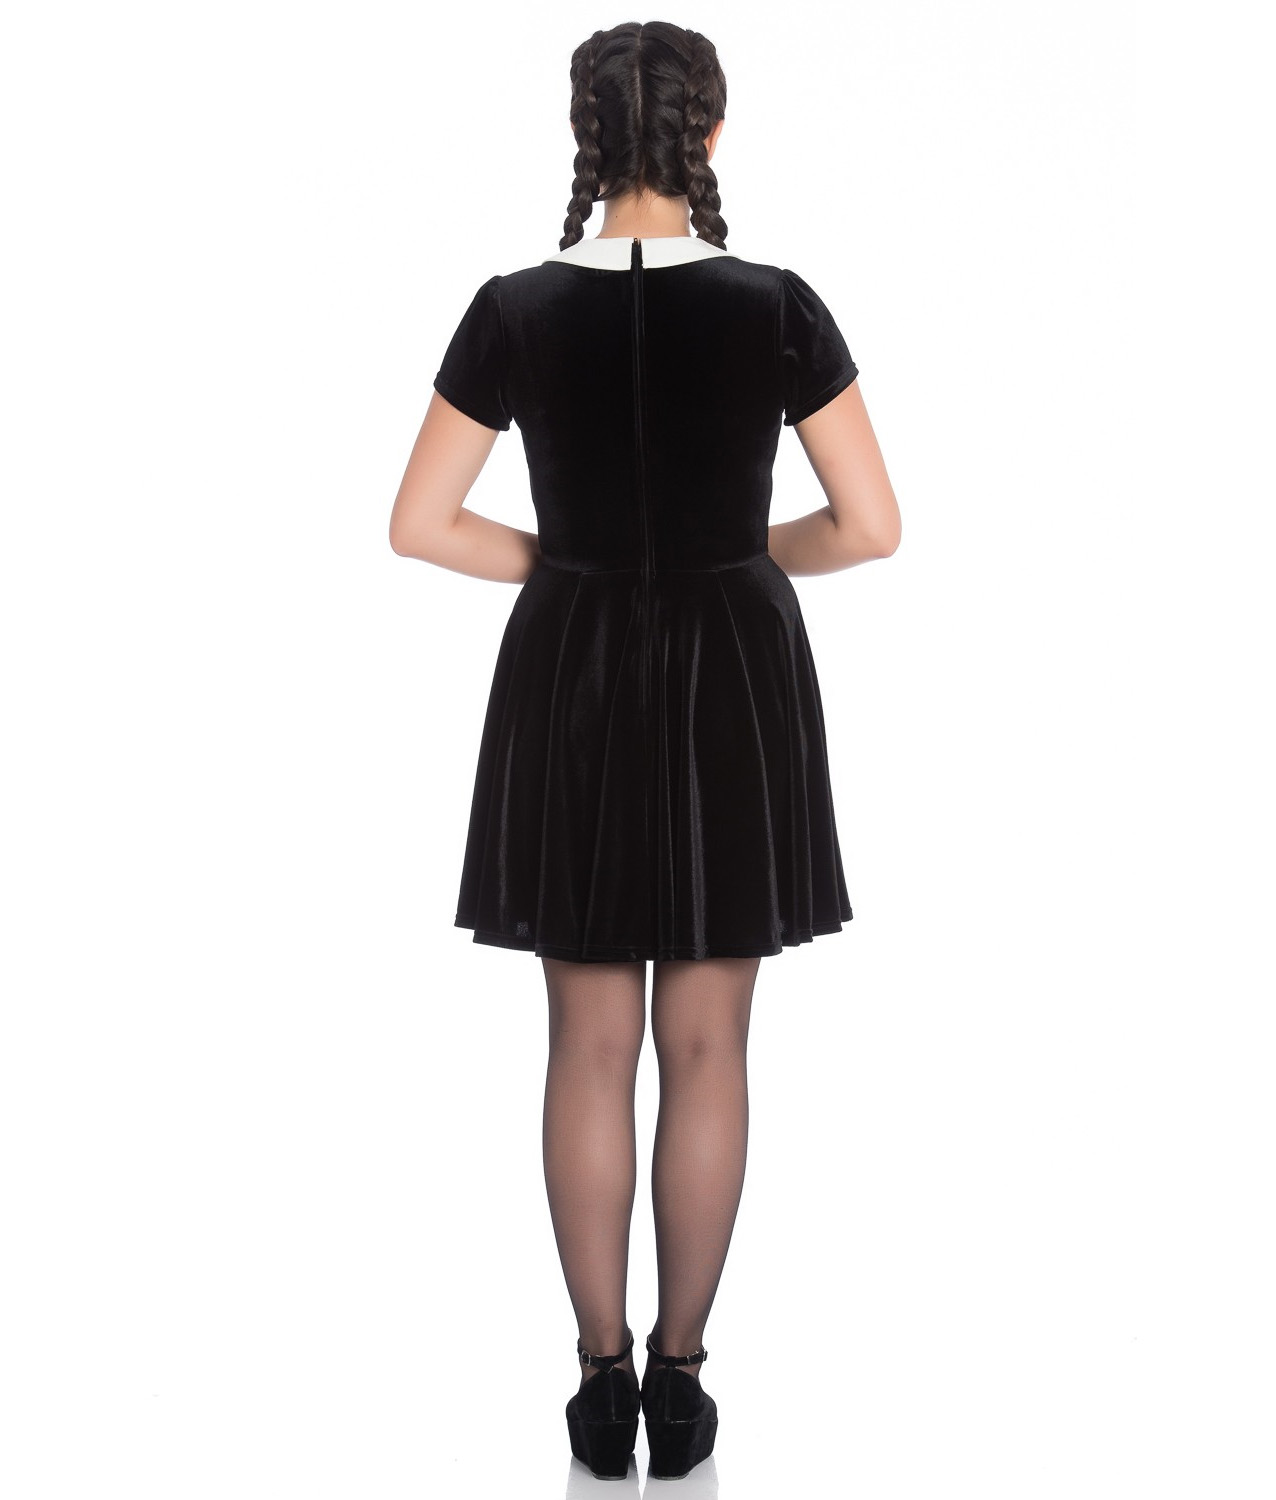 Hell-Bunny-Gothic-Mini-Skater-Dress-MISS-MUFFET-Spiders-Black-Velvet-All-Sizes thumbnail 17